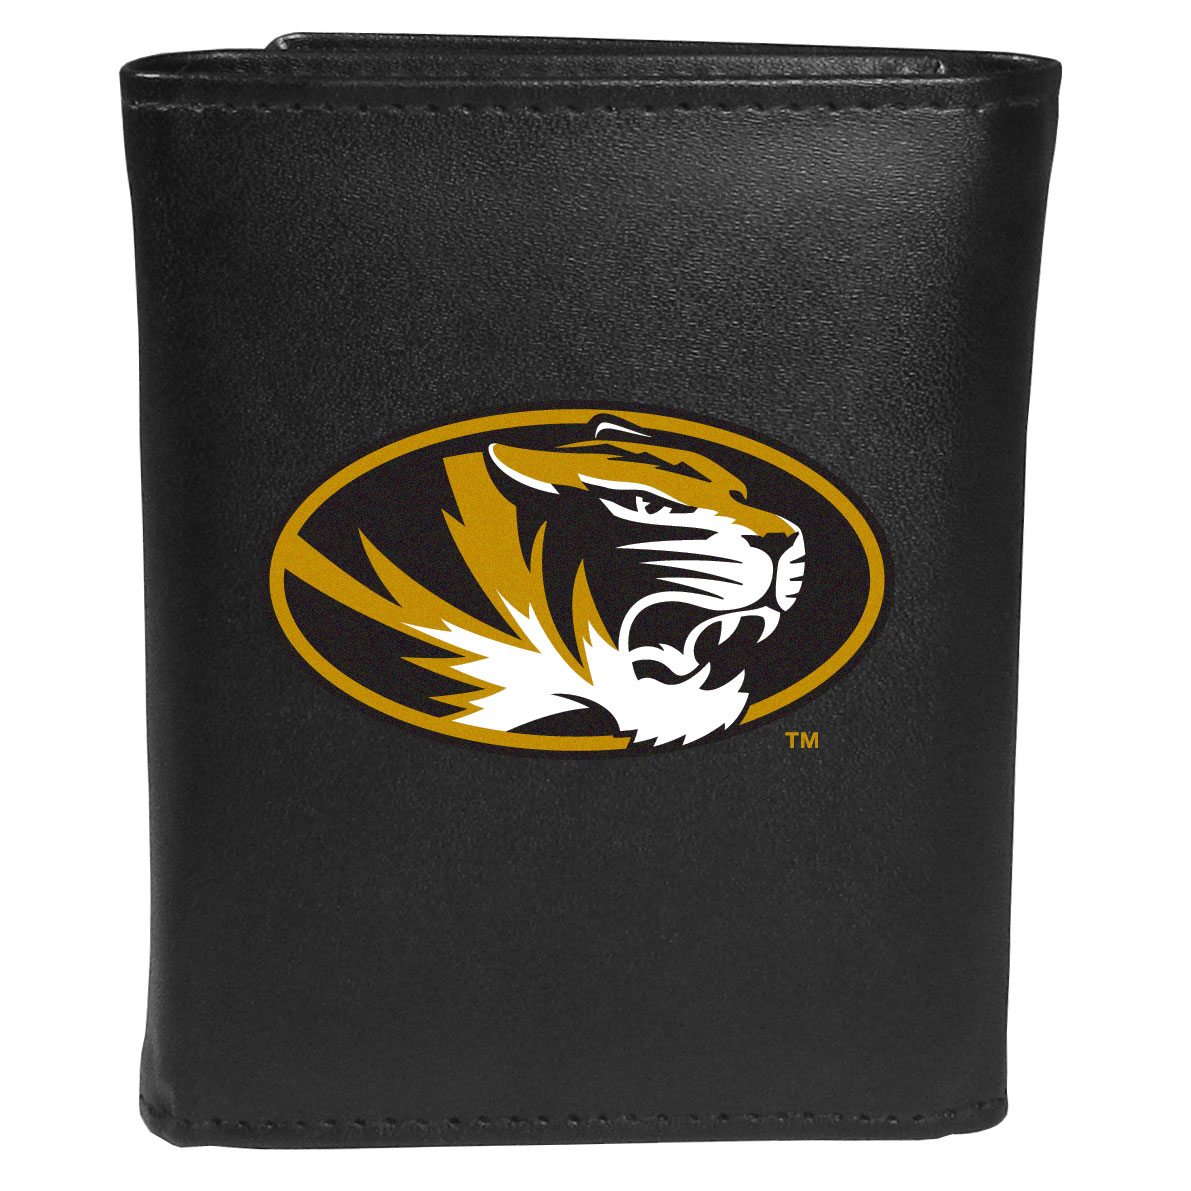 Missouri Tigers Leather Tri-fold Wallet, Large Logo - Our classic fine leather tri-fold wallet is meticulously crafted with genuine leather that will age beautifully so you will have a quality wallet for years to come. This is fan apparel at its finest. The wallet is packed with organizational  features; lots of credit card slots, large billfold pocket, and a window ID slot. The front of the wallet features an extra large Missouri Tigers printed logo.